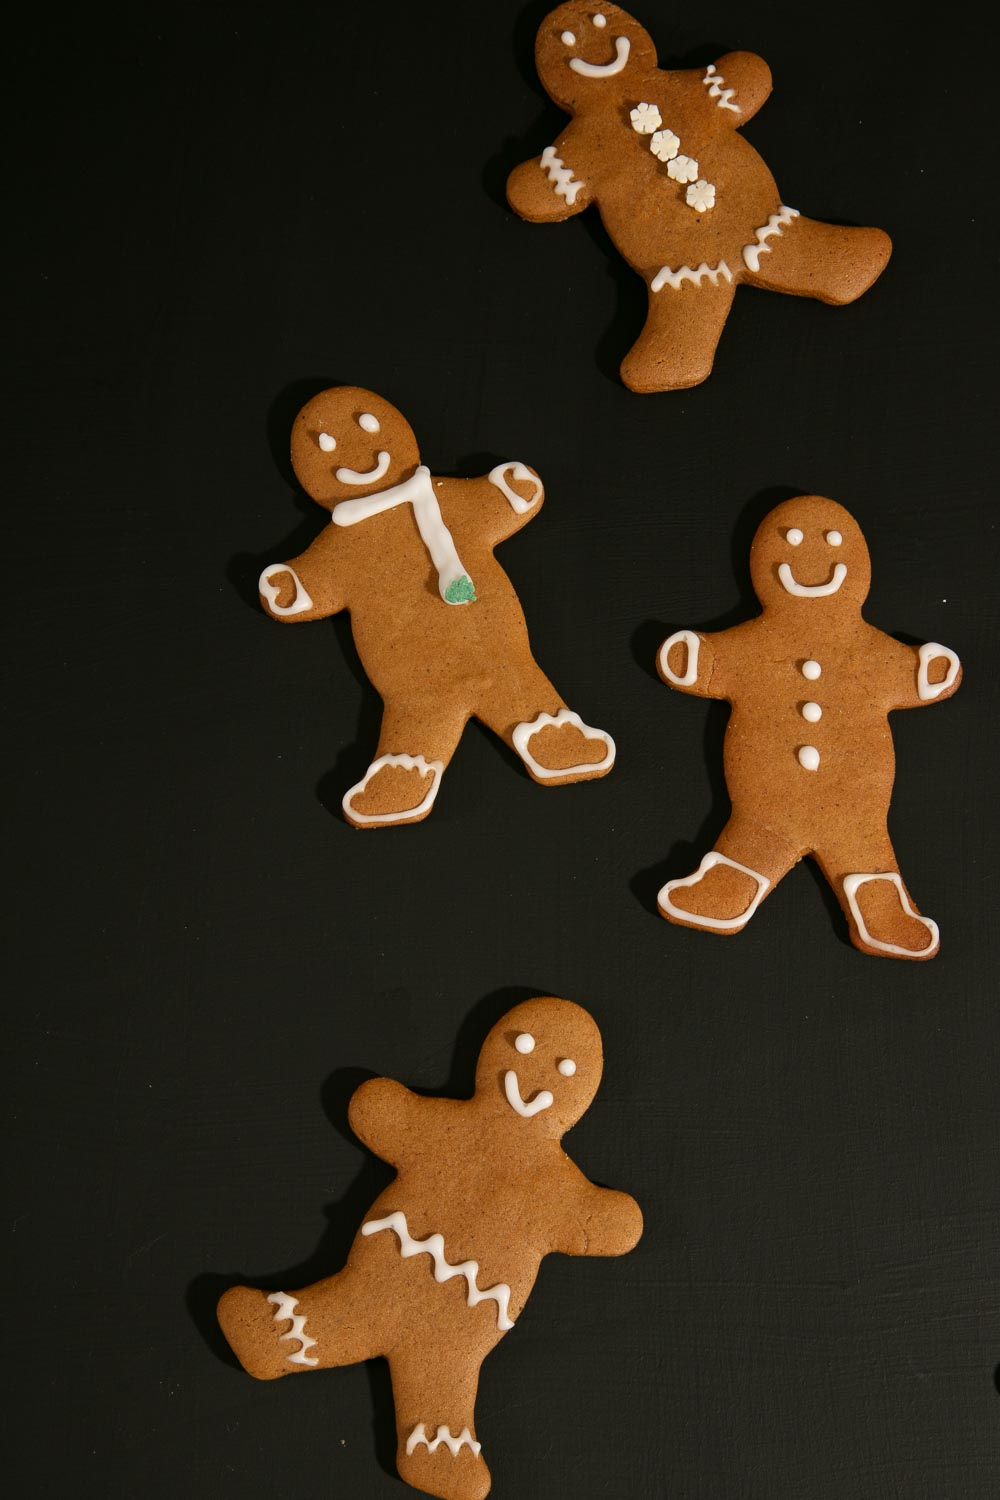 Decorated Vegan Gingerbread Men.